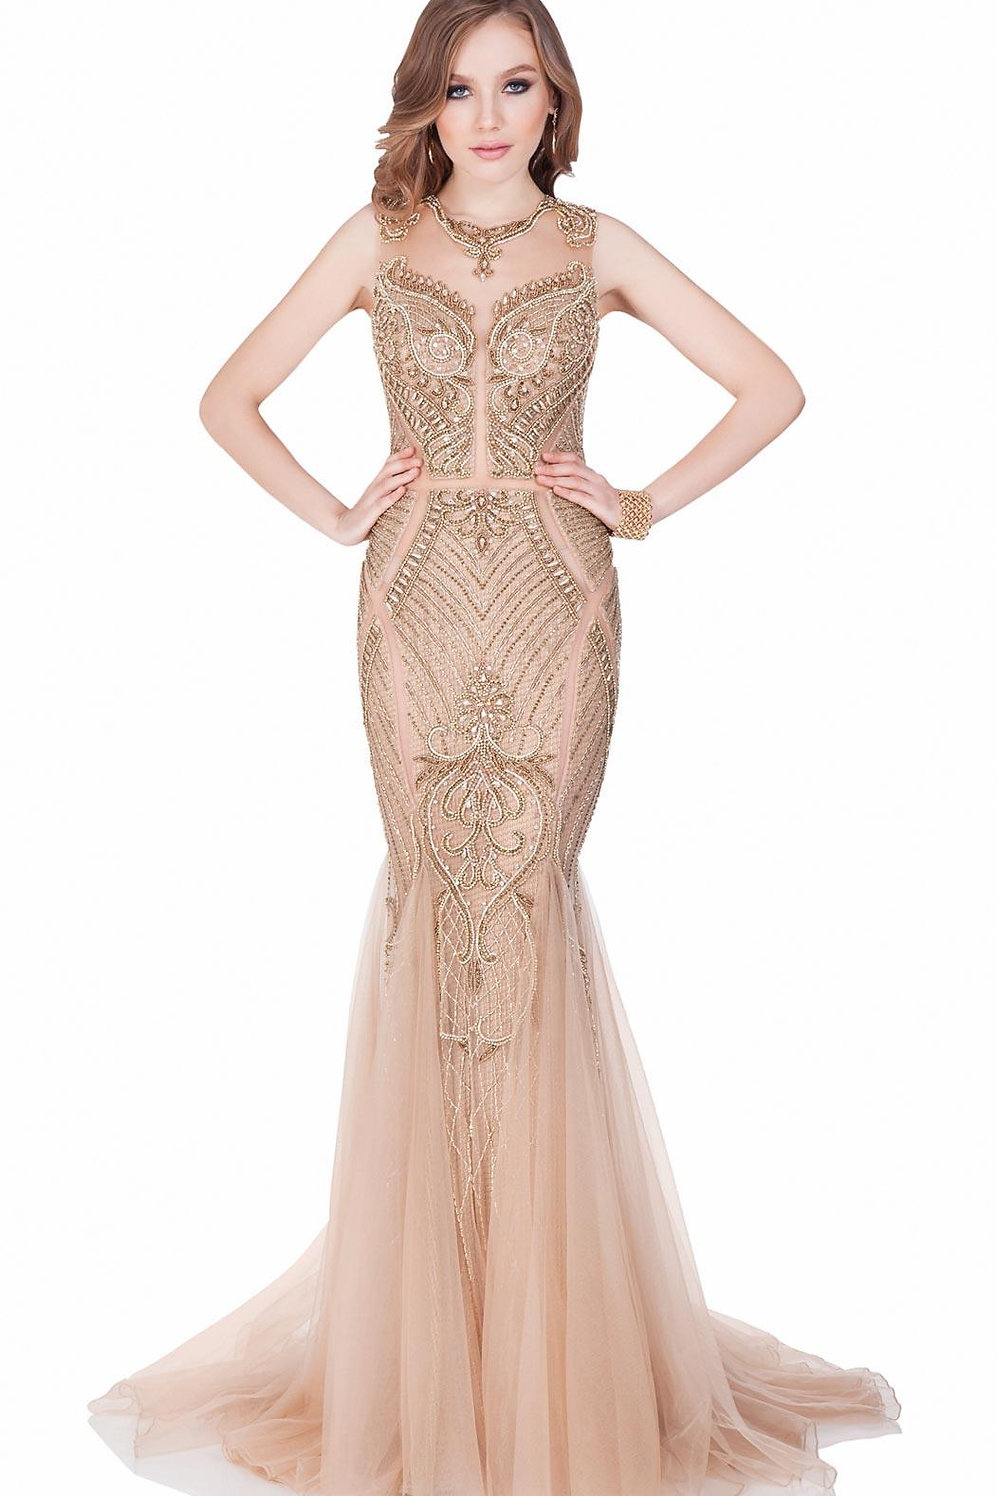 Terani Couture Bronze Nude Illusion Evening Gown Style 1621gl1886